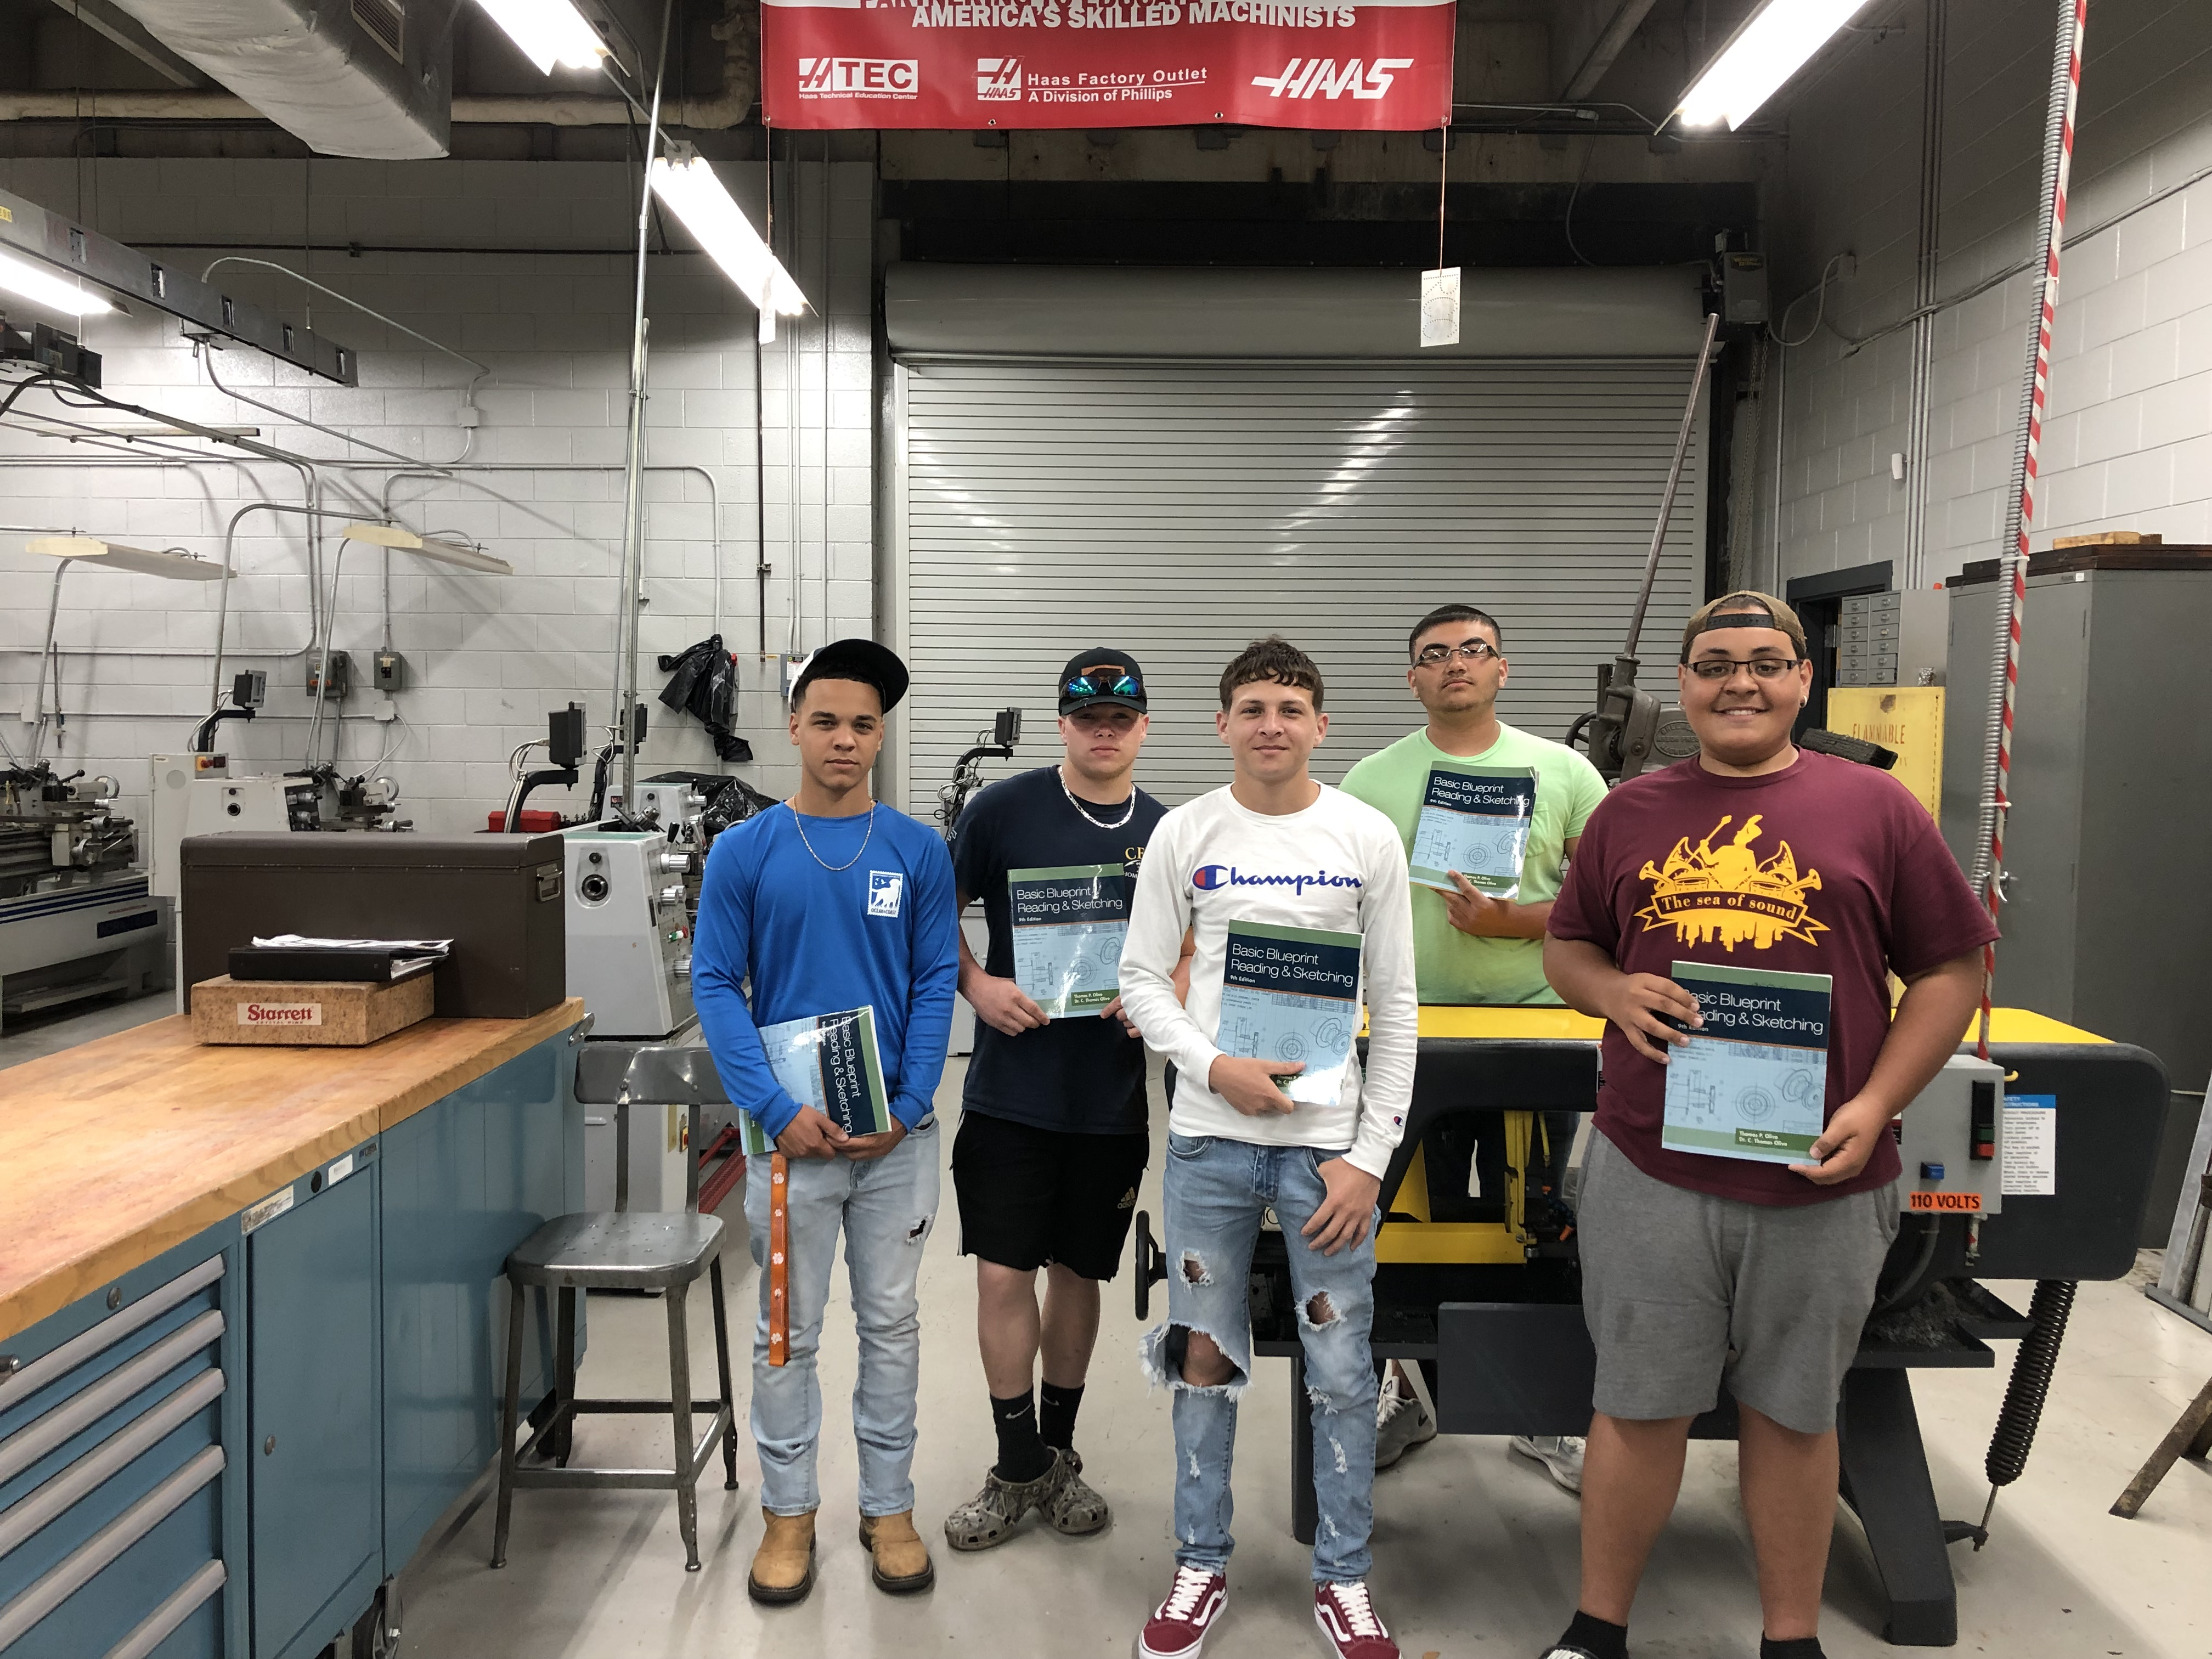 High school students hold the free workbooks they received in the machining program.